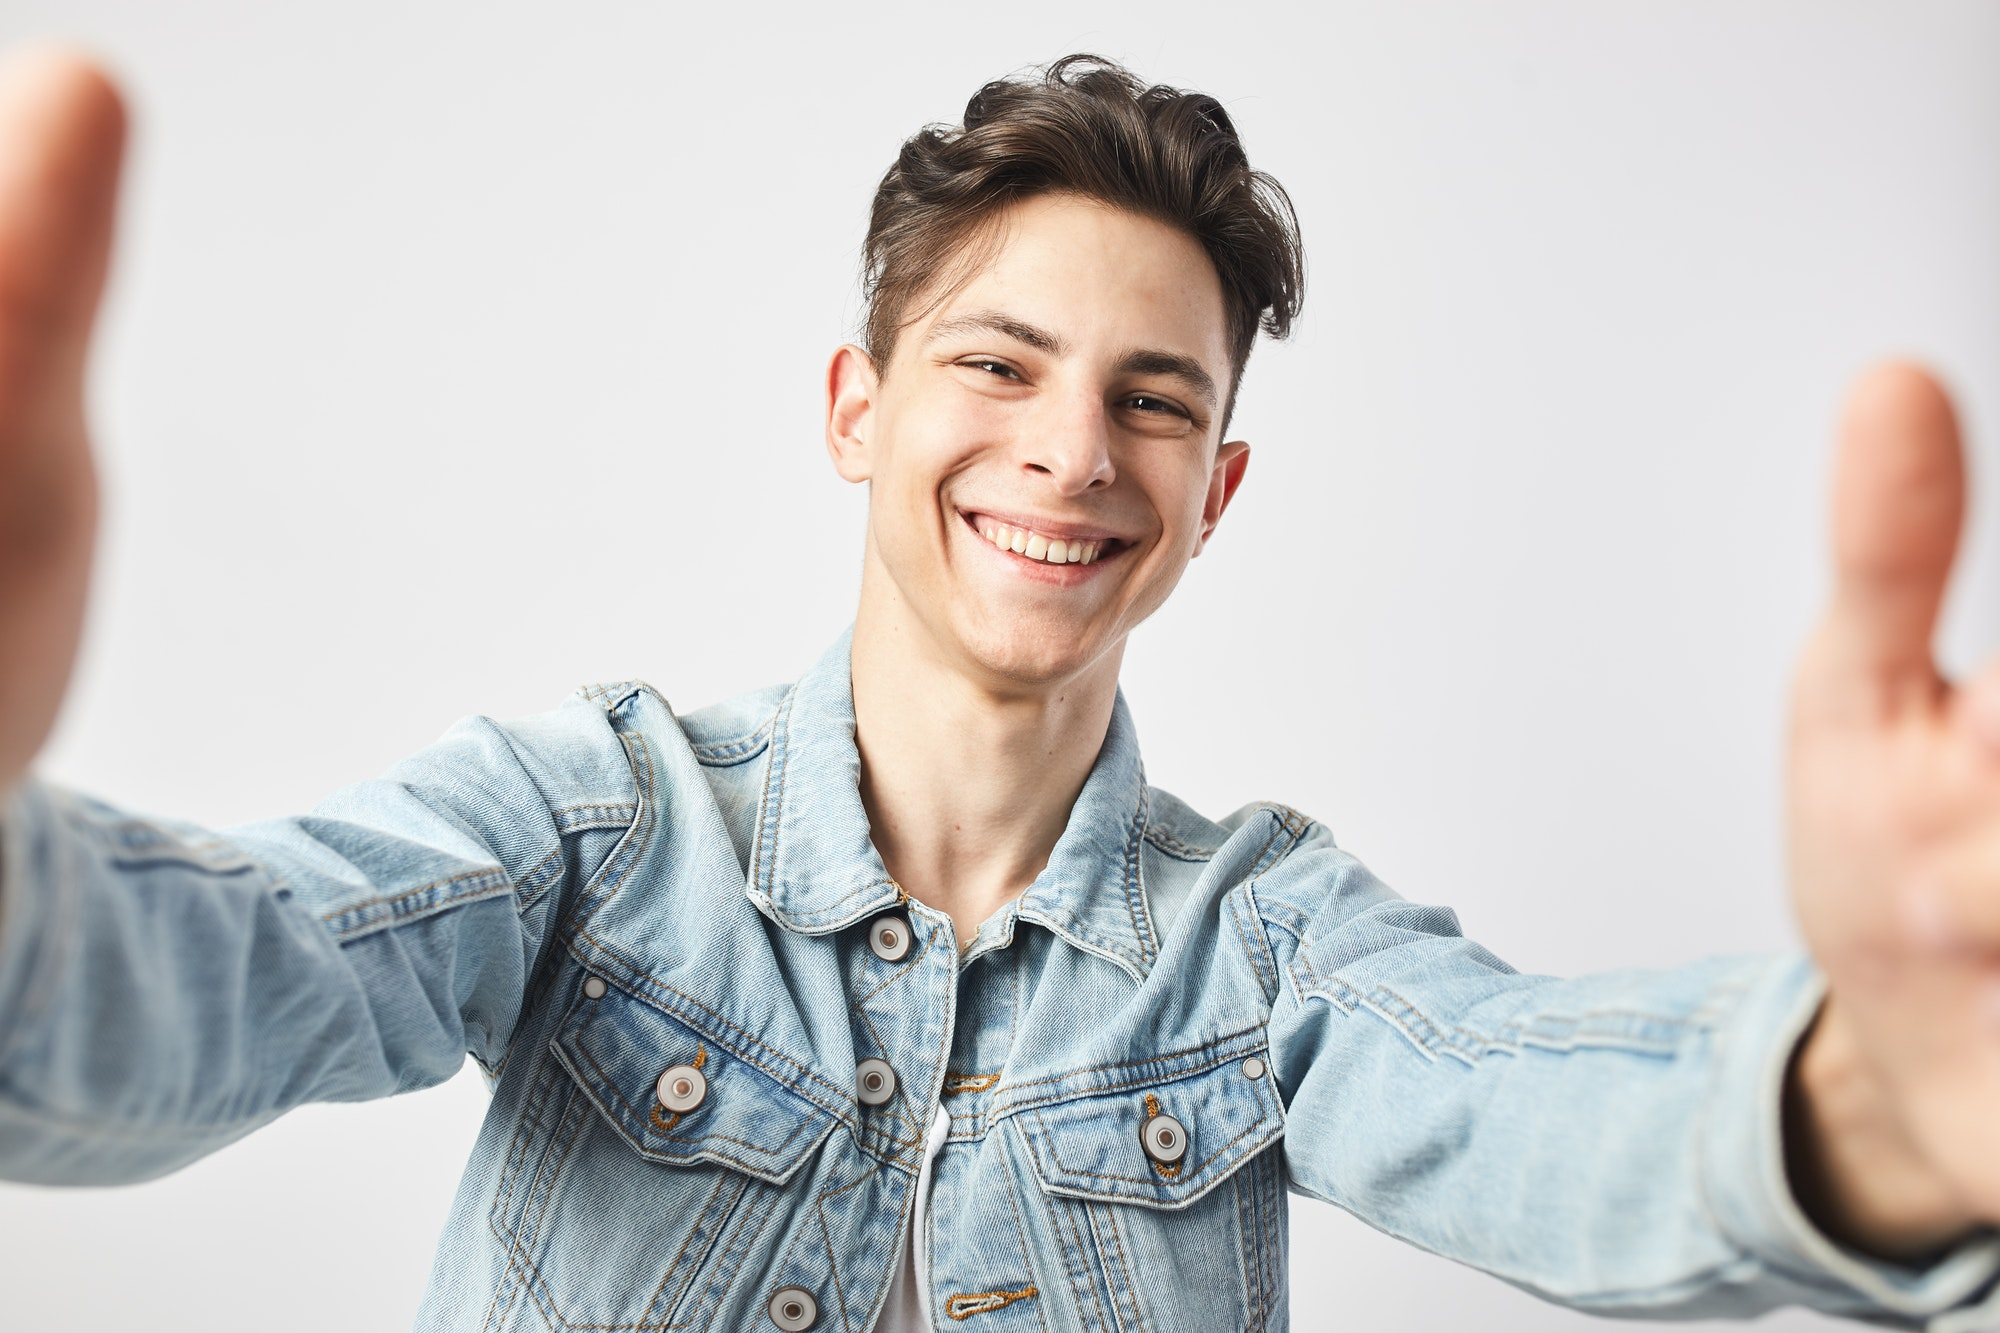 Smiling dark-haired guy dressed in a white t-shirt and a denim jacket makes a salfie on the white